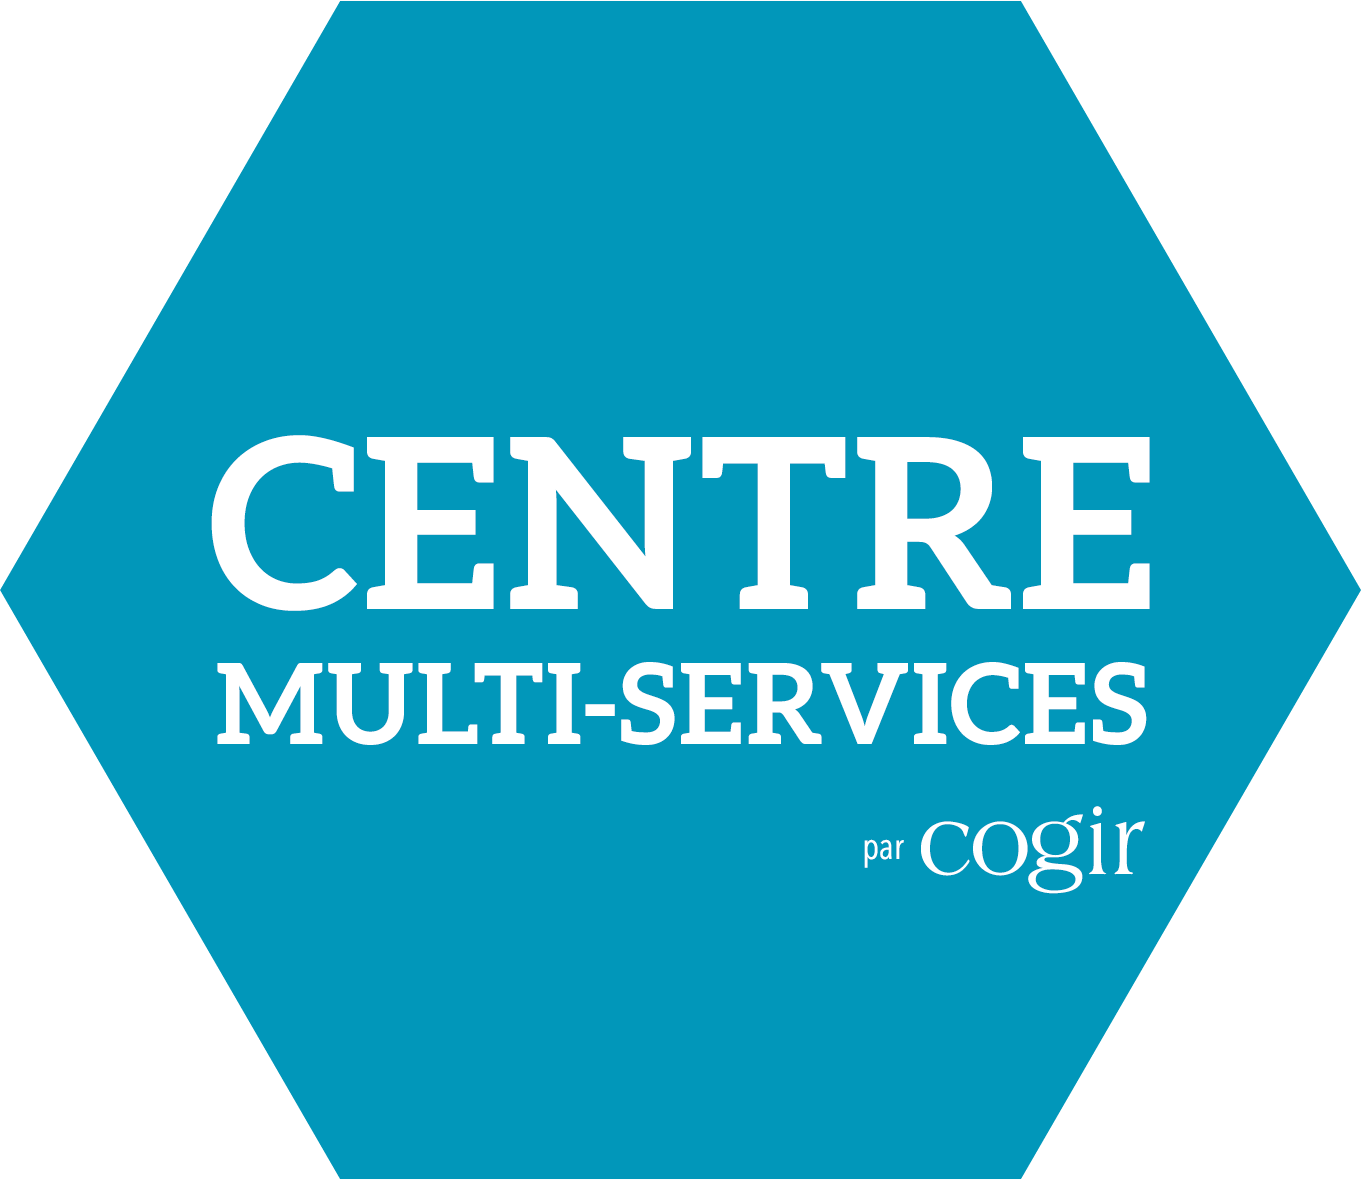 Multi-services center Cogir